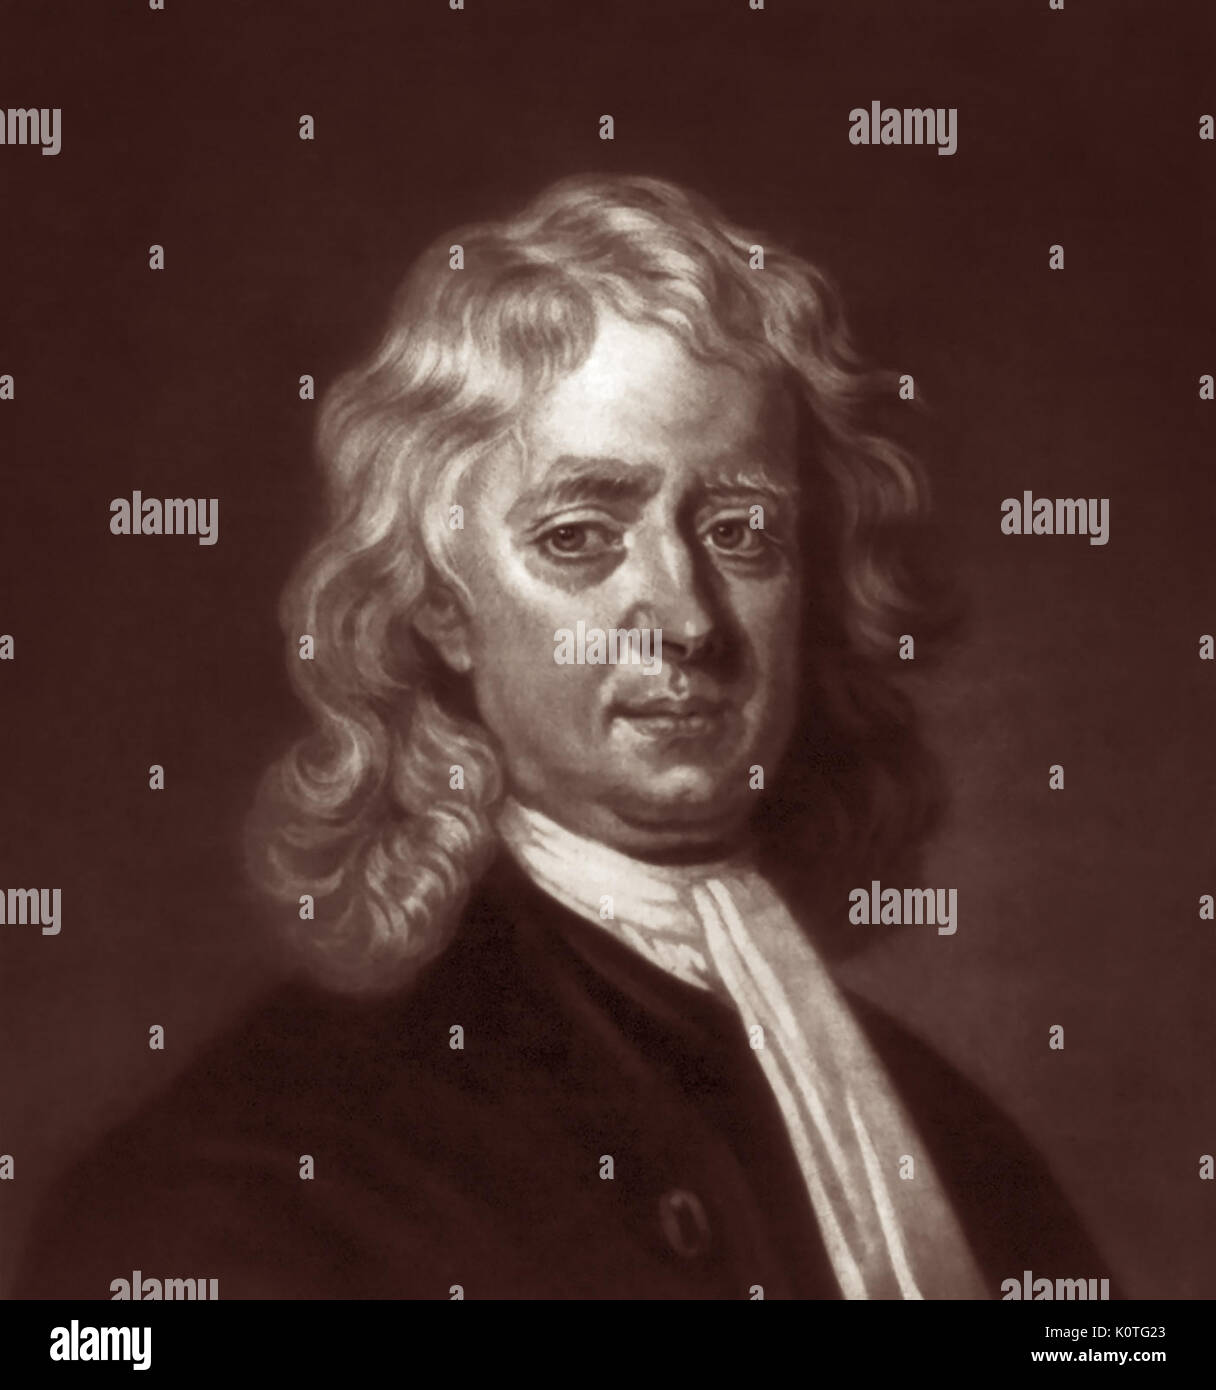 the life of sir isaac newton a scientist and astronomer Biography of sir isaac newton for elementry and middle school students  isaac newton english scientist, astronomer, and mathematician born in 1642 - died in 1727.